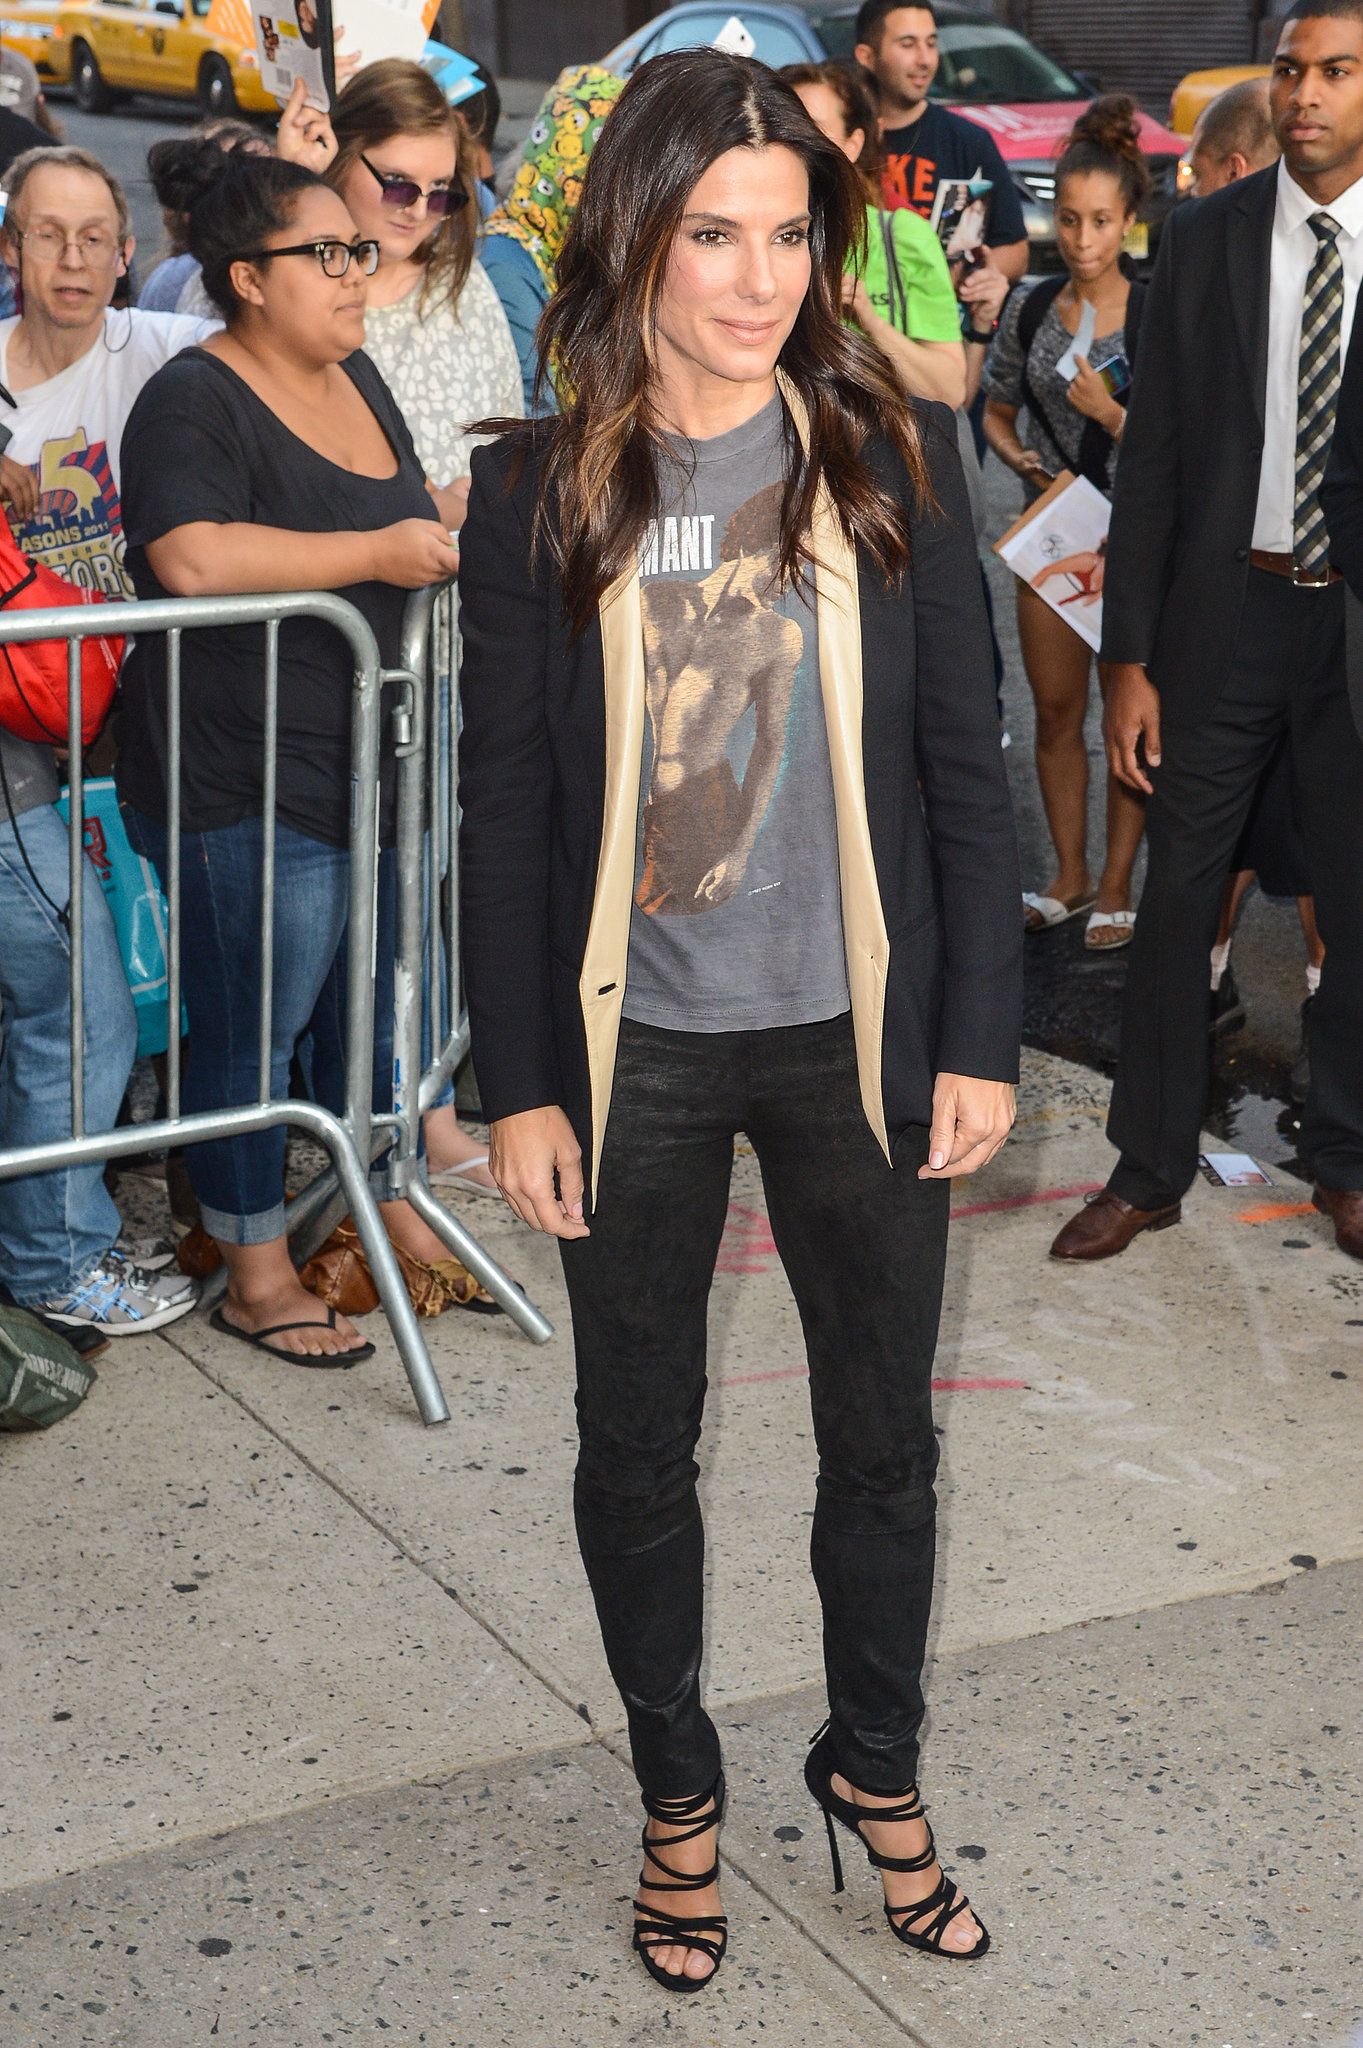 Sandra Bullock Promoting Gravity in New York City